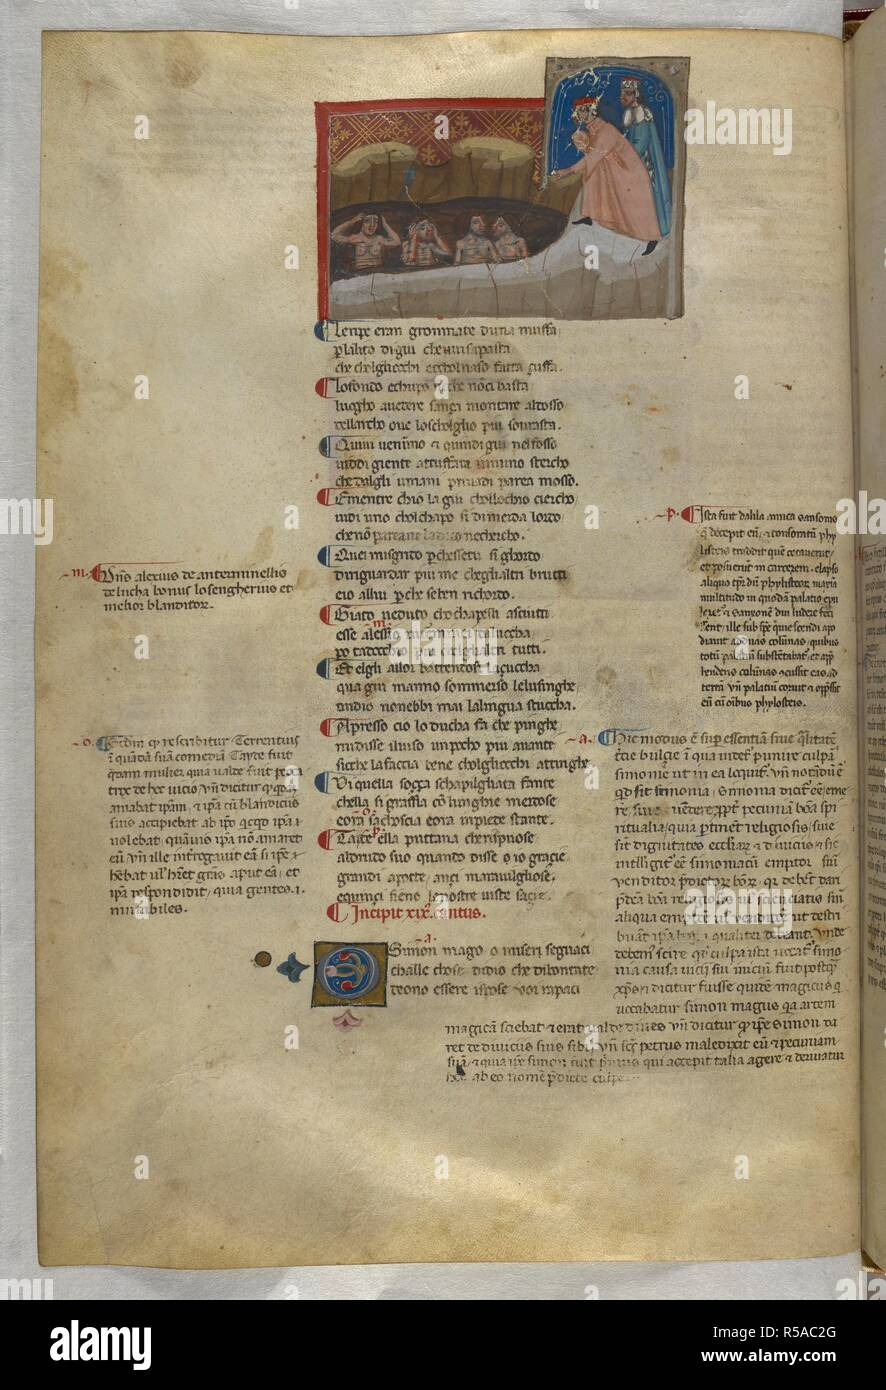 Inferno: Flatterers in a pool of filth. Dante Alighieri, Divina Commedia ( The Divine Comedy ), with a commentary in Latin. 1st half of the 14th century. Source: Egerton 943, f.33v. Language: Italian, Latin. - Stock Image